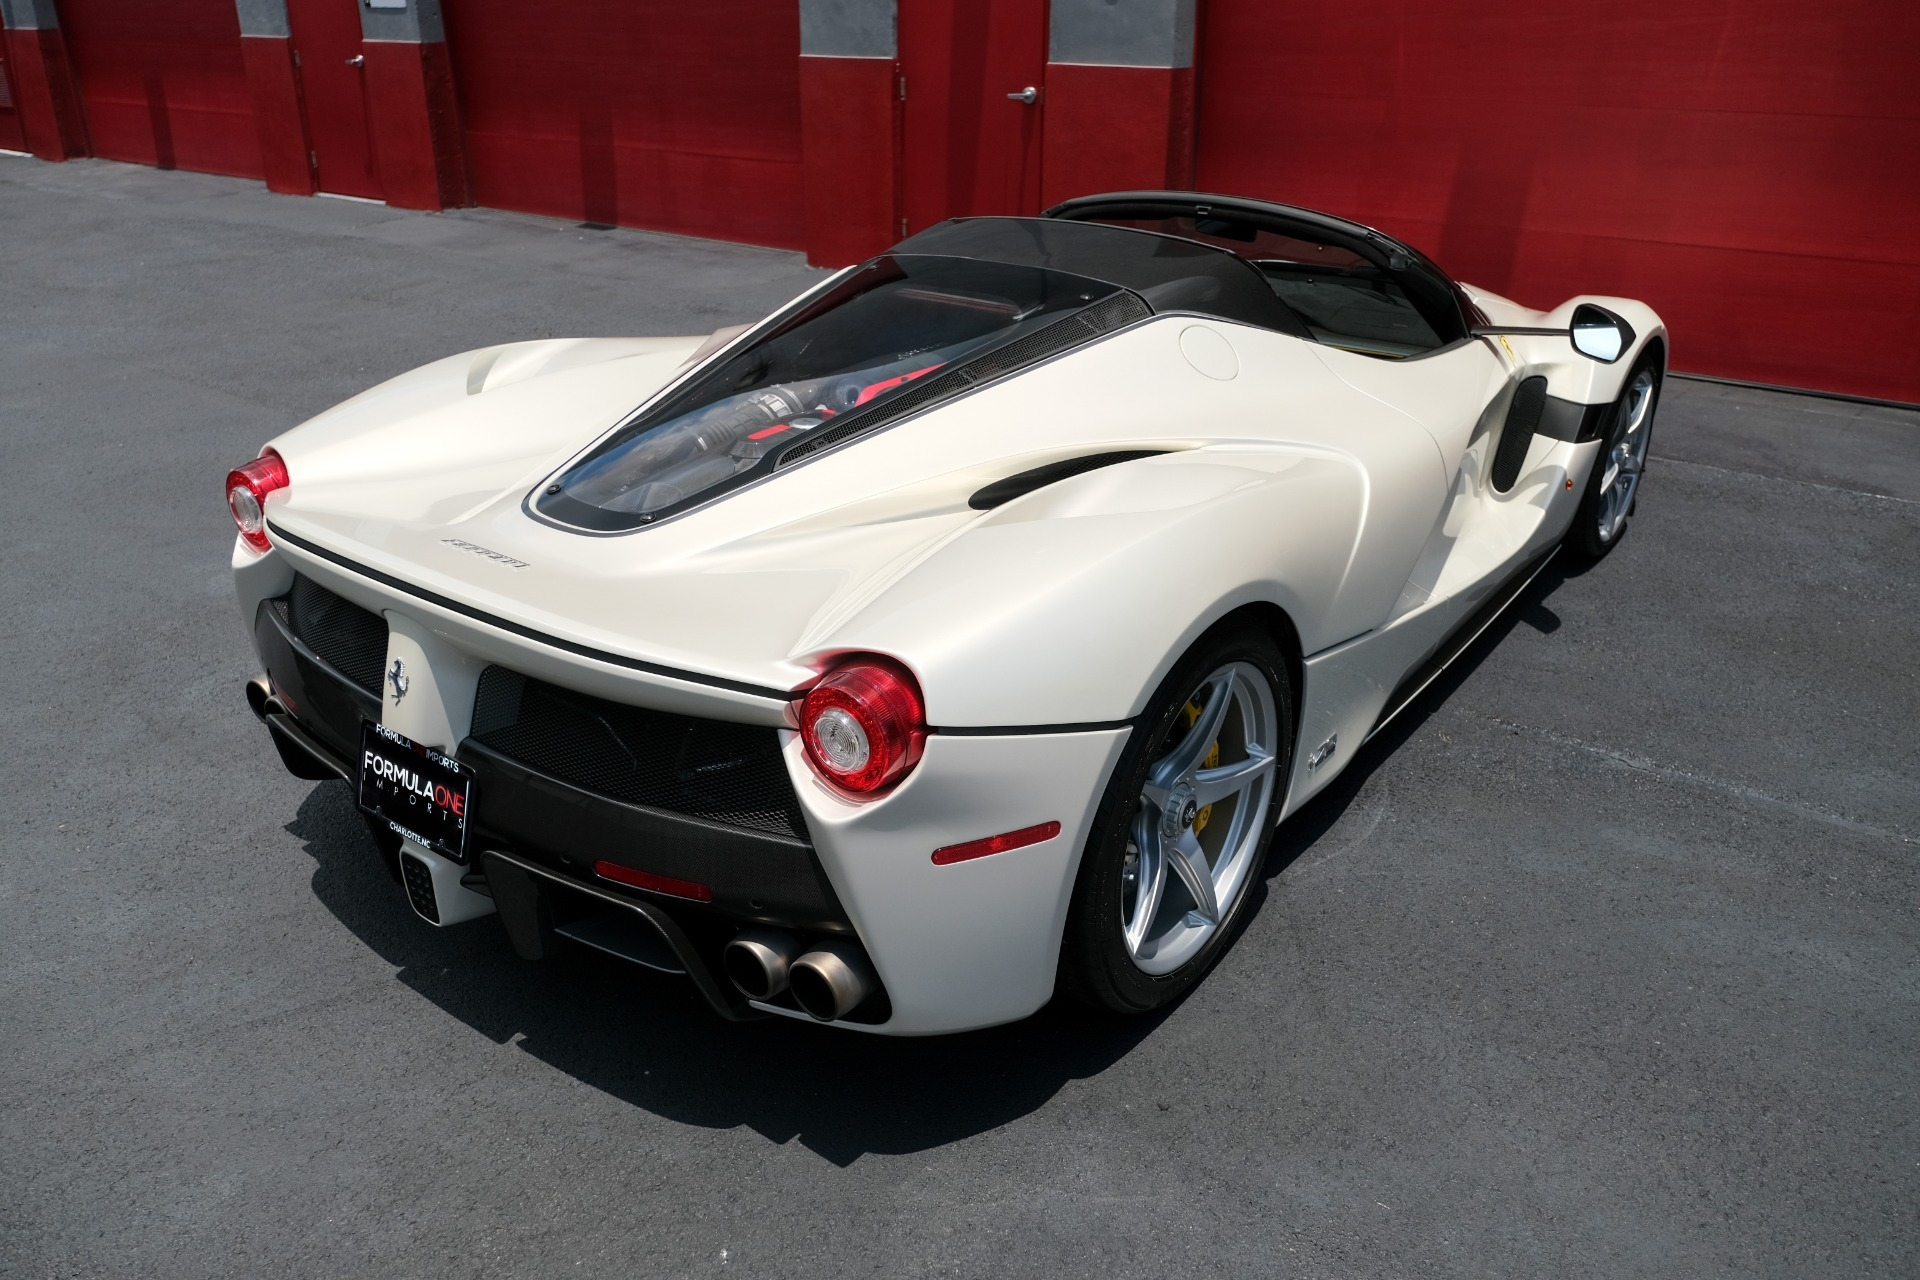 Used 2017 Ferrari LAFERRARI APERTA HYPERCAR / 963HP / HY-KERS / CARBON FIBER / BREMBO / F1 AUTO for sale Sold at Formula Imports in Charlotte NC 28227 7